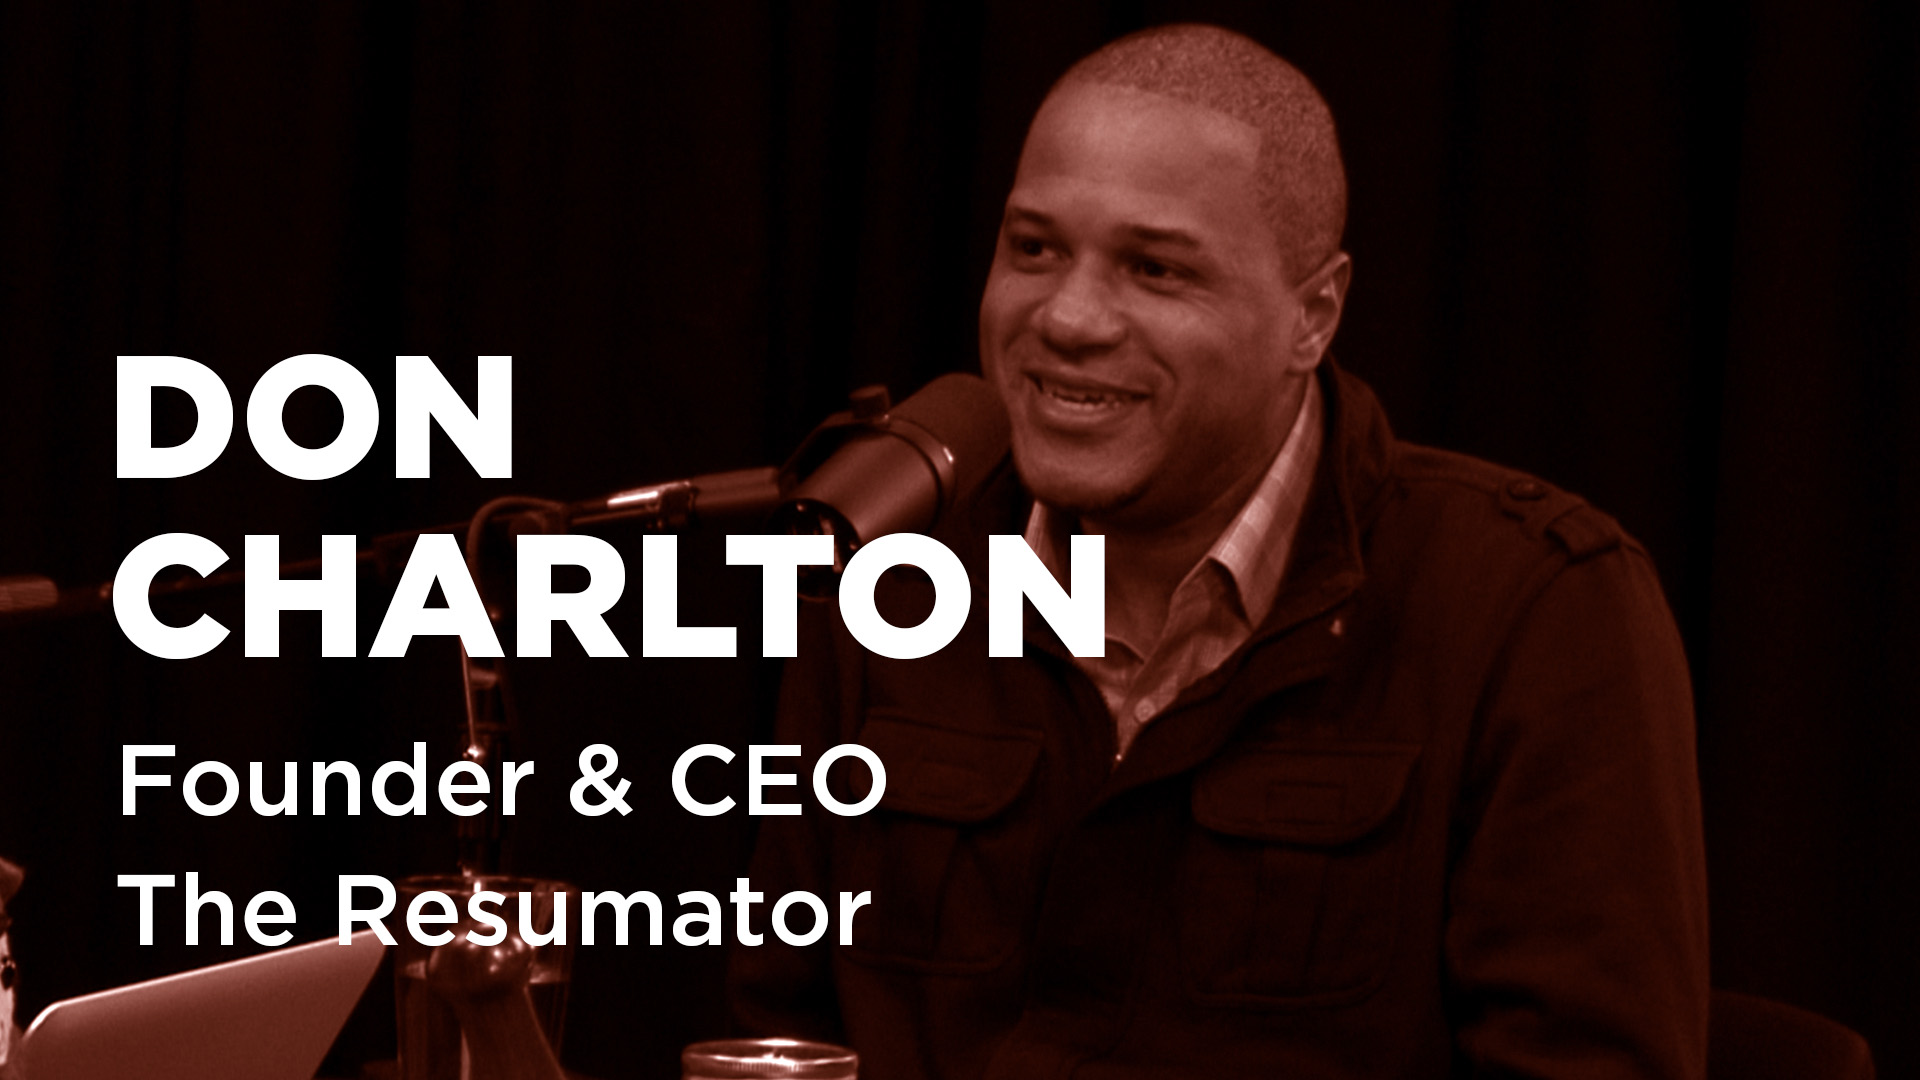 Don Charlton Founder and CEO The Resumator TWiST 330